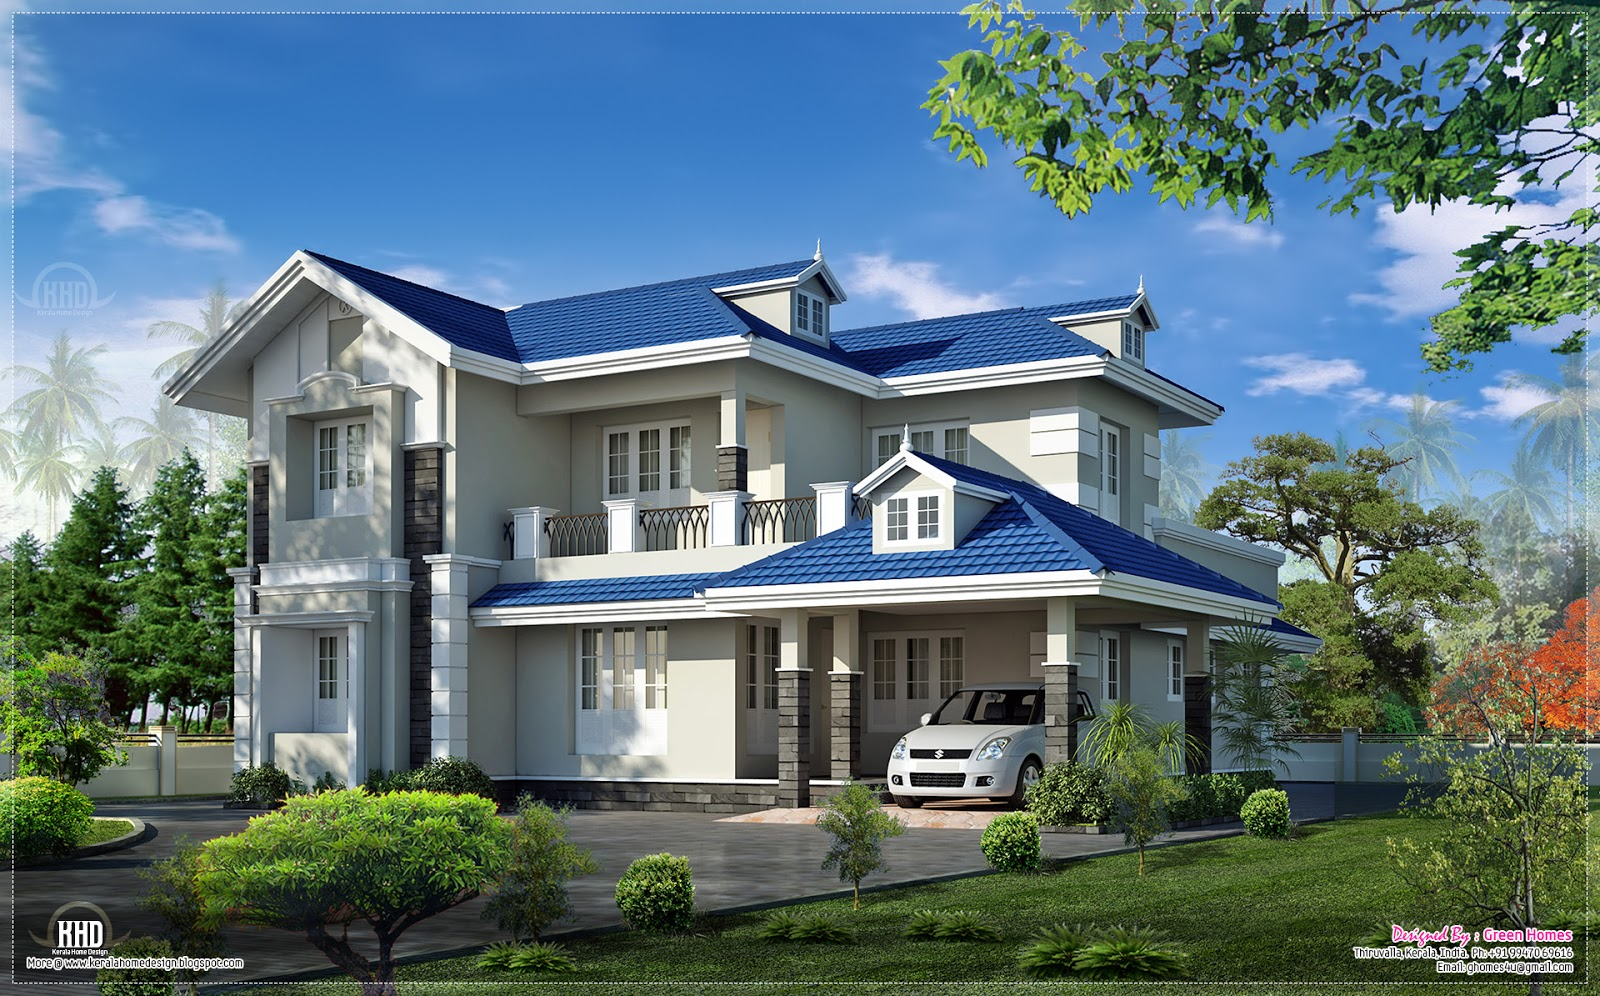 Beautiful 4 bedroom villa exterior home kerala plans House beautiful com kitchens